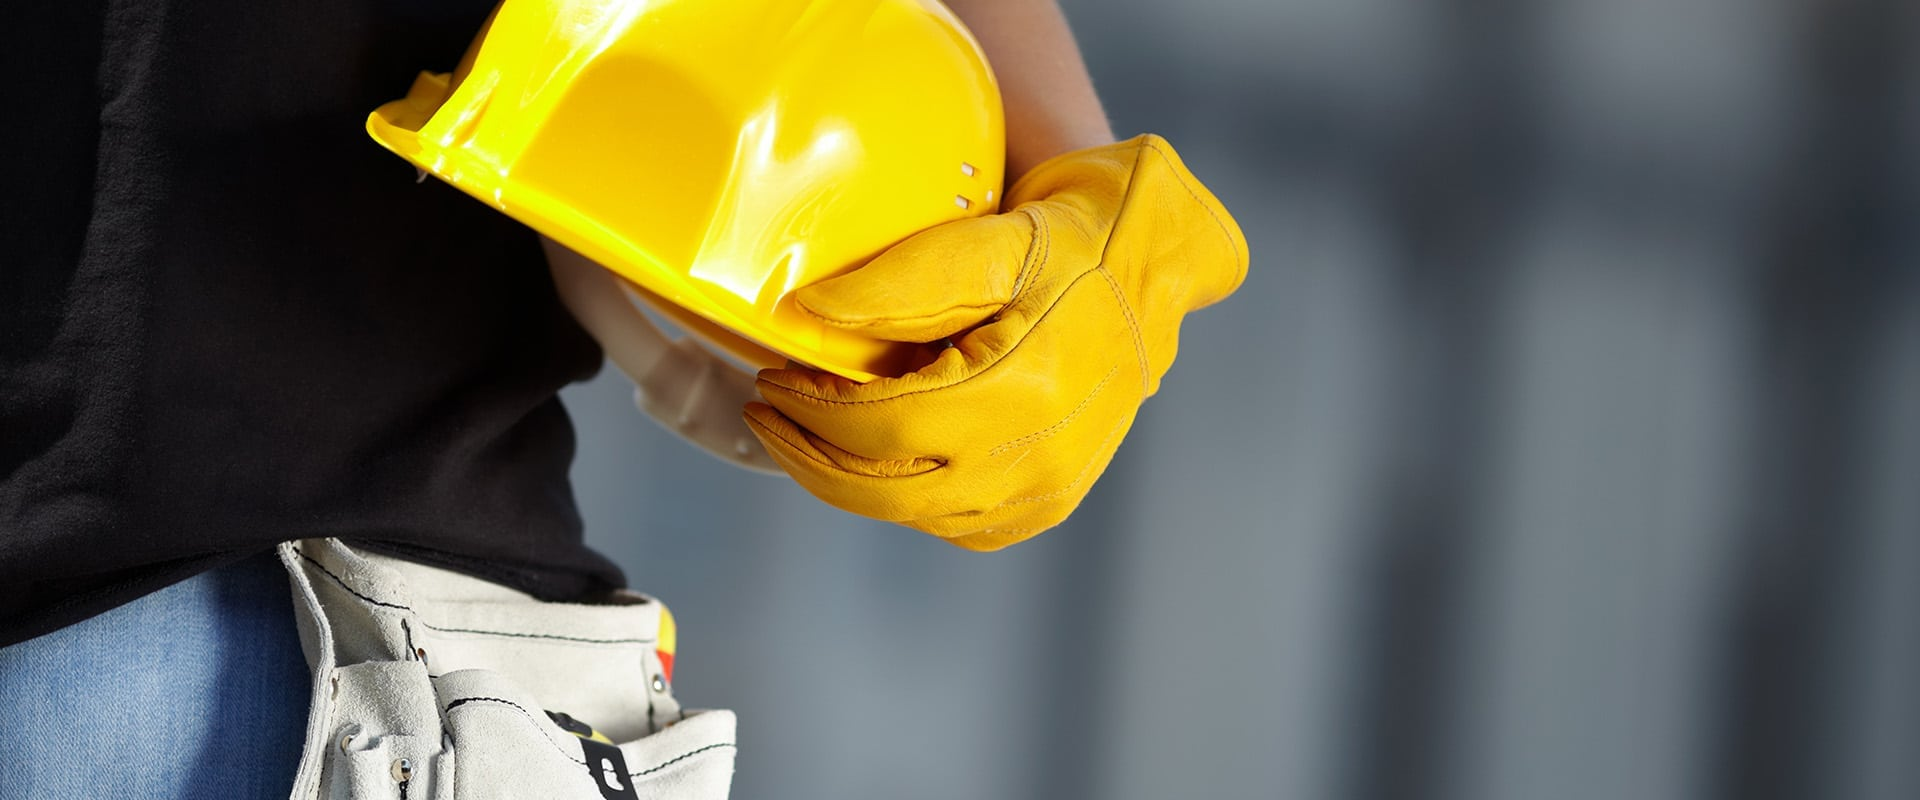 Pitfalls of Hiring An Unlicensed Contractor